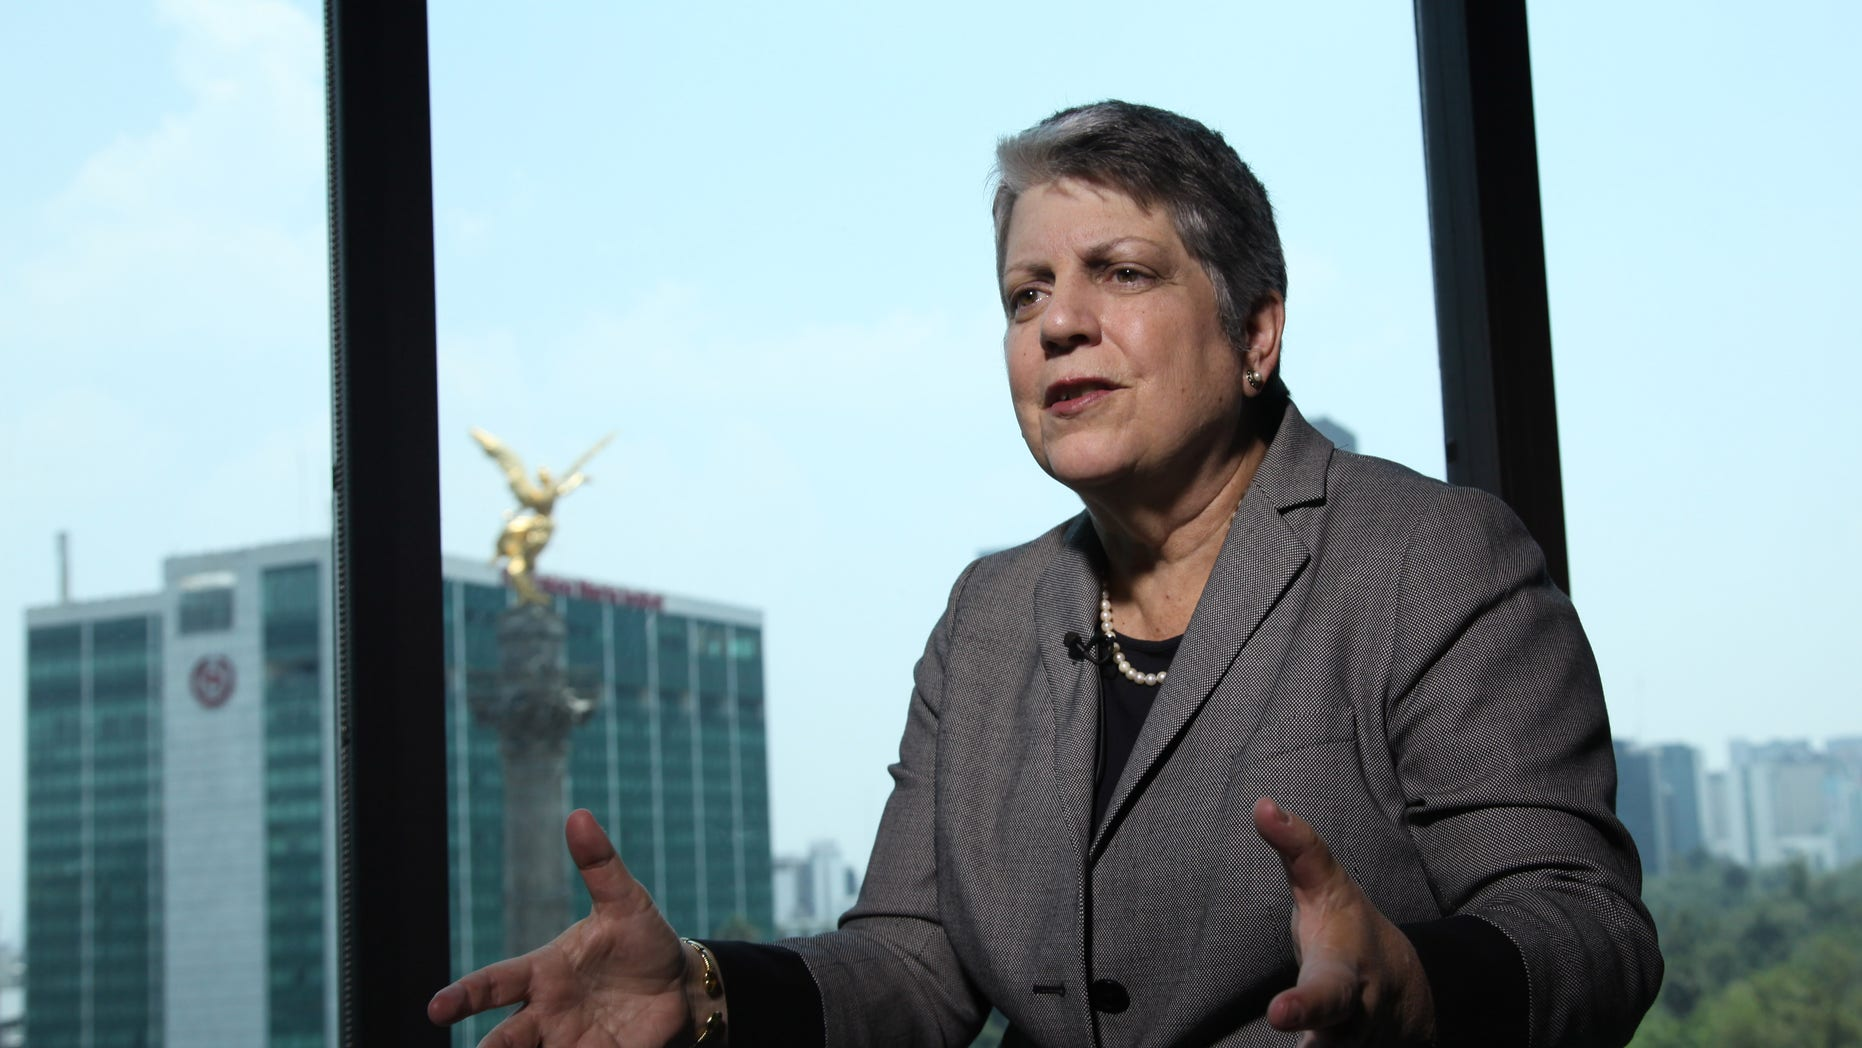 """University of California President Janet Napolitano speaks during an interview with The Associated Press in Mexico City, Wednesday May 21, 2014. The former U.S. secretary of homeland security says political calls for more walls and policing at the U.S.-Mexico border is a """"straw man"""" designed to defeat immigration reform. (AP Photo/Marco Ugarte)"""